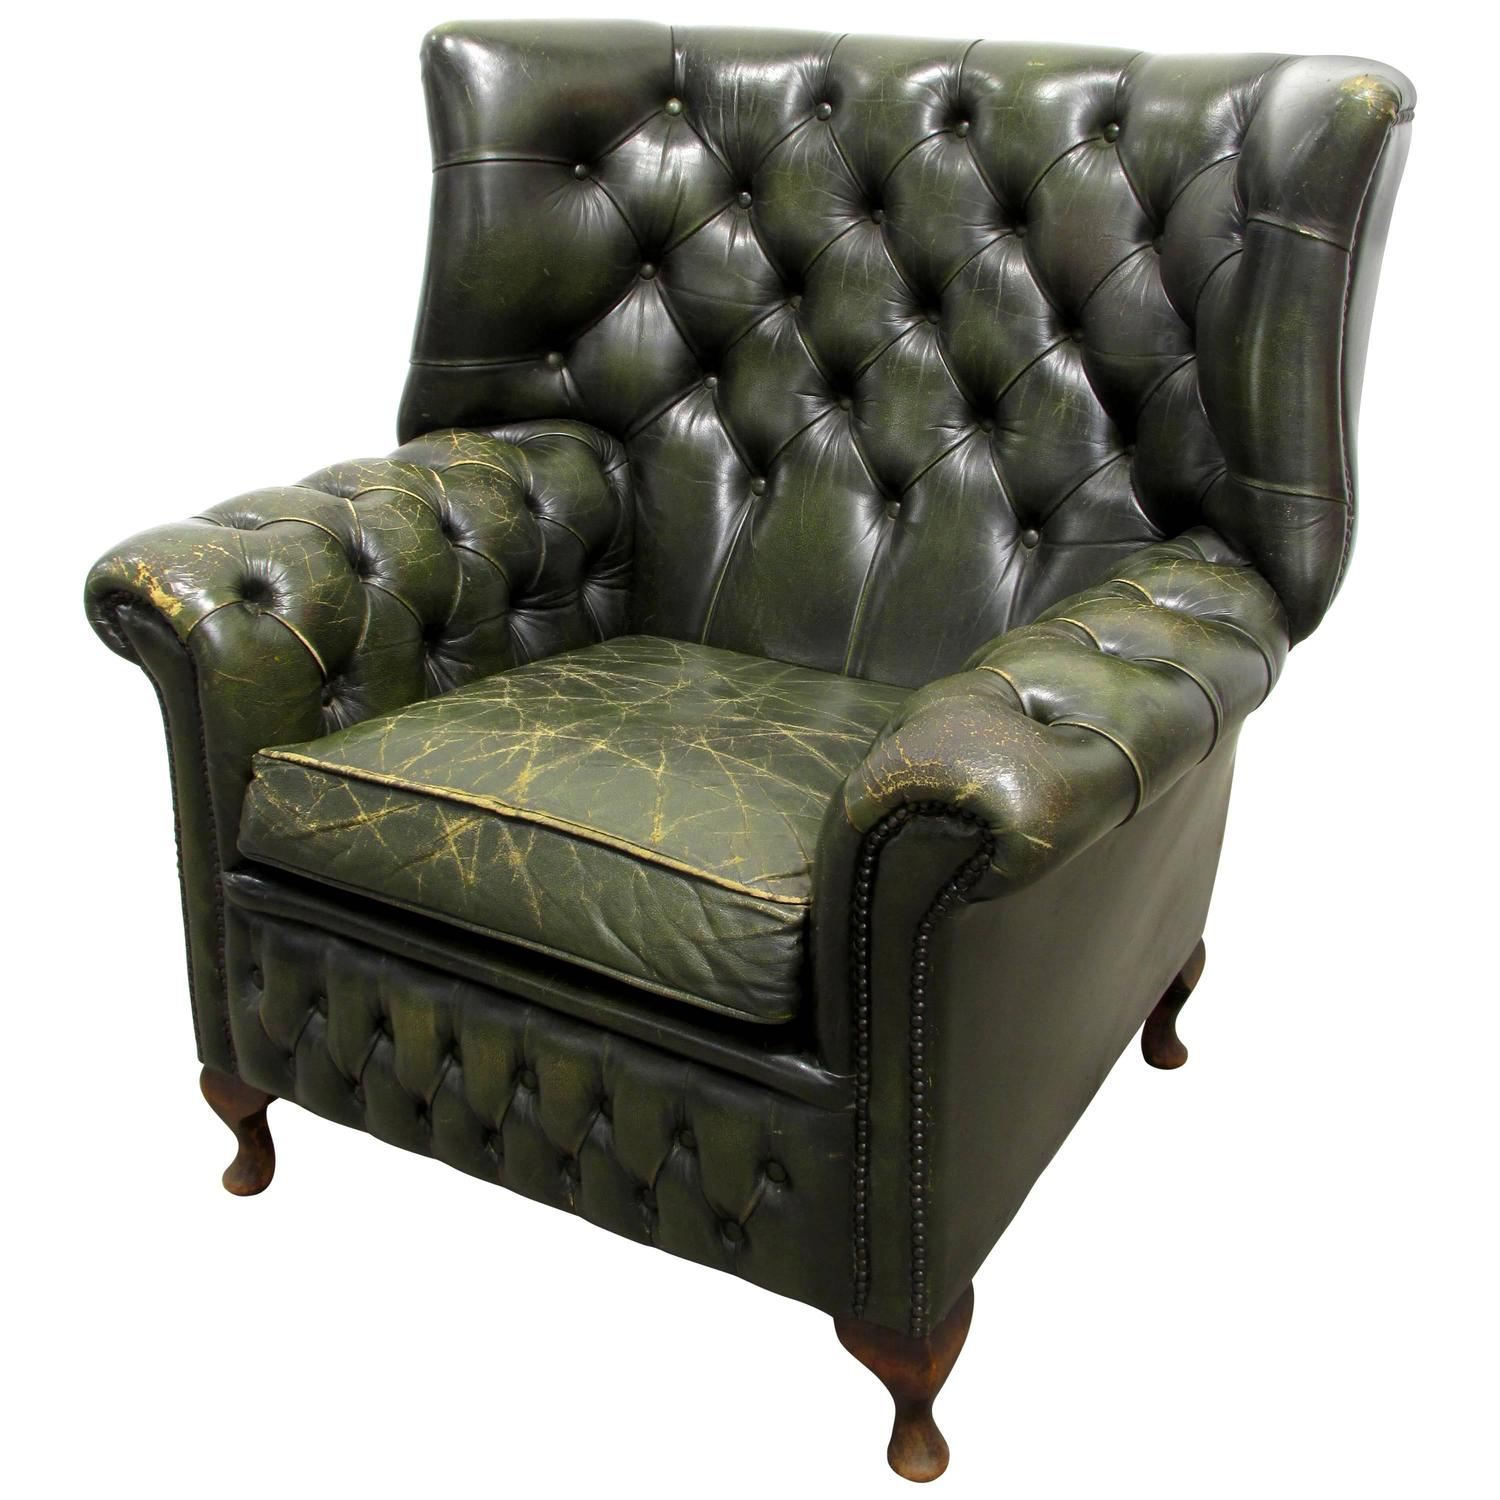 Tufted Leather Chair Green Tufted Leather Wingback Chair For Sale At 1stdibs